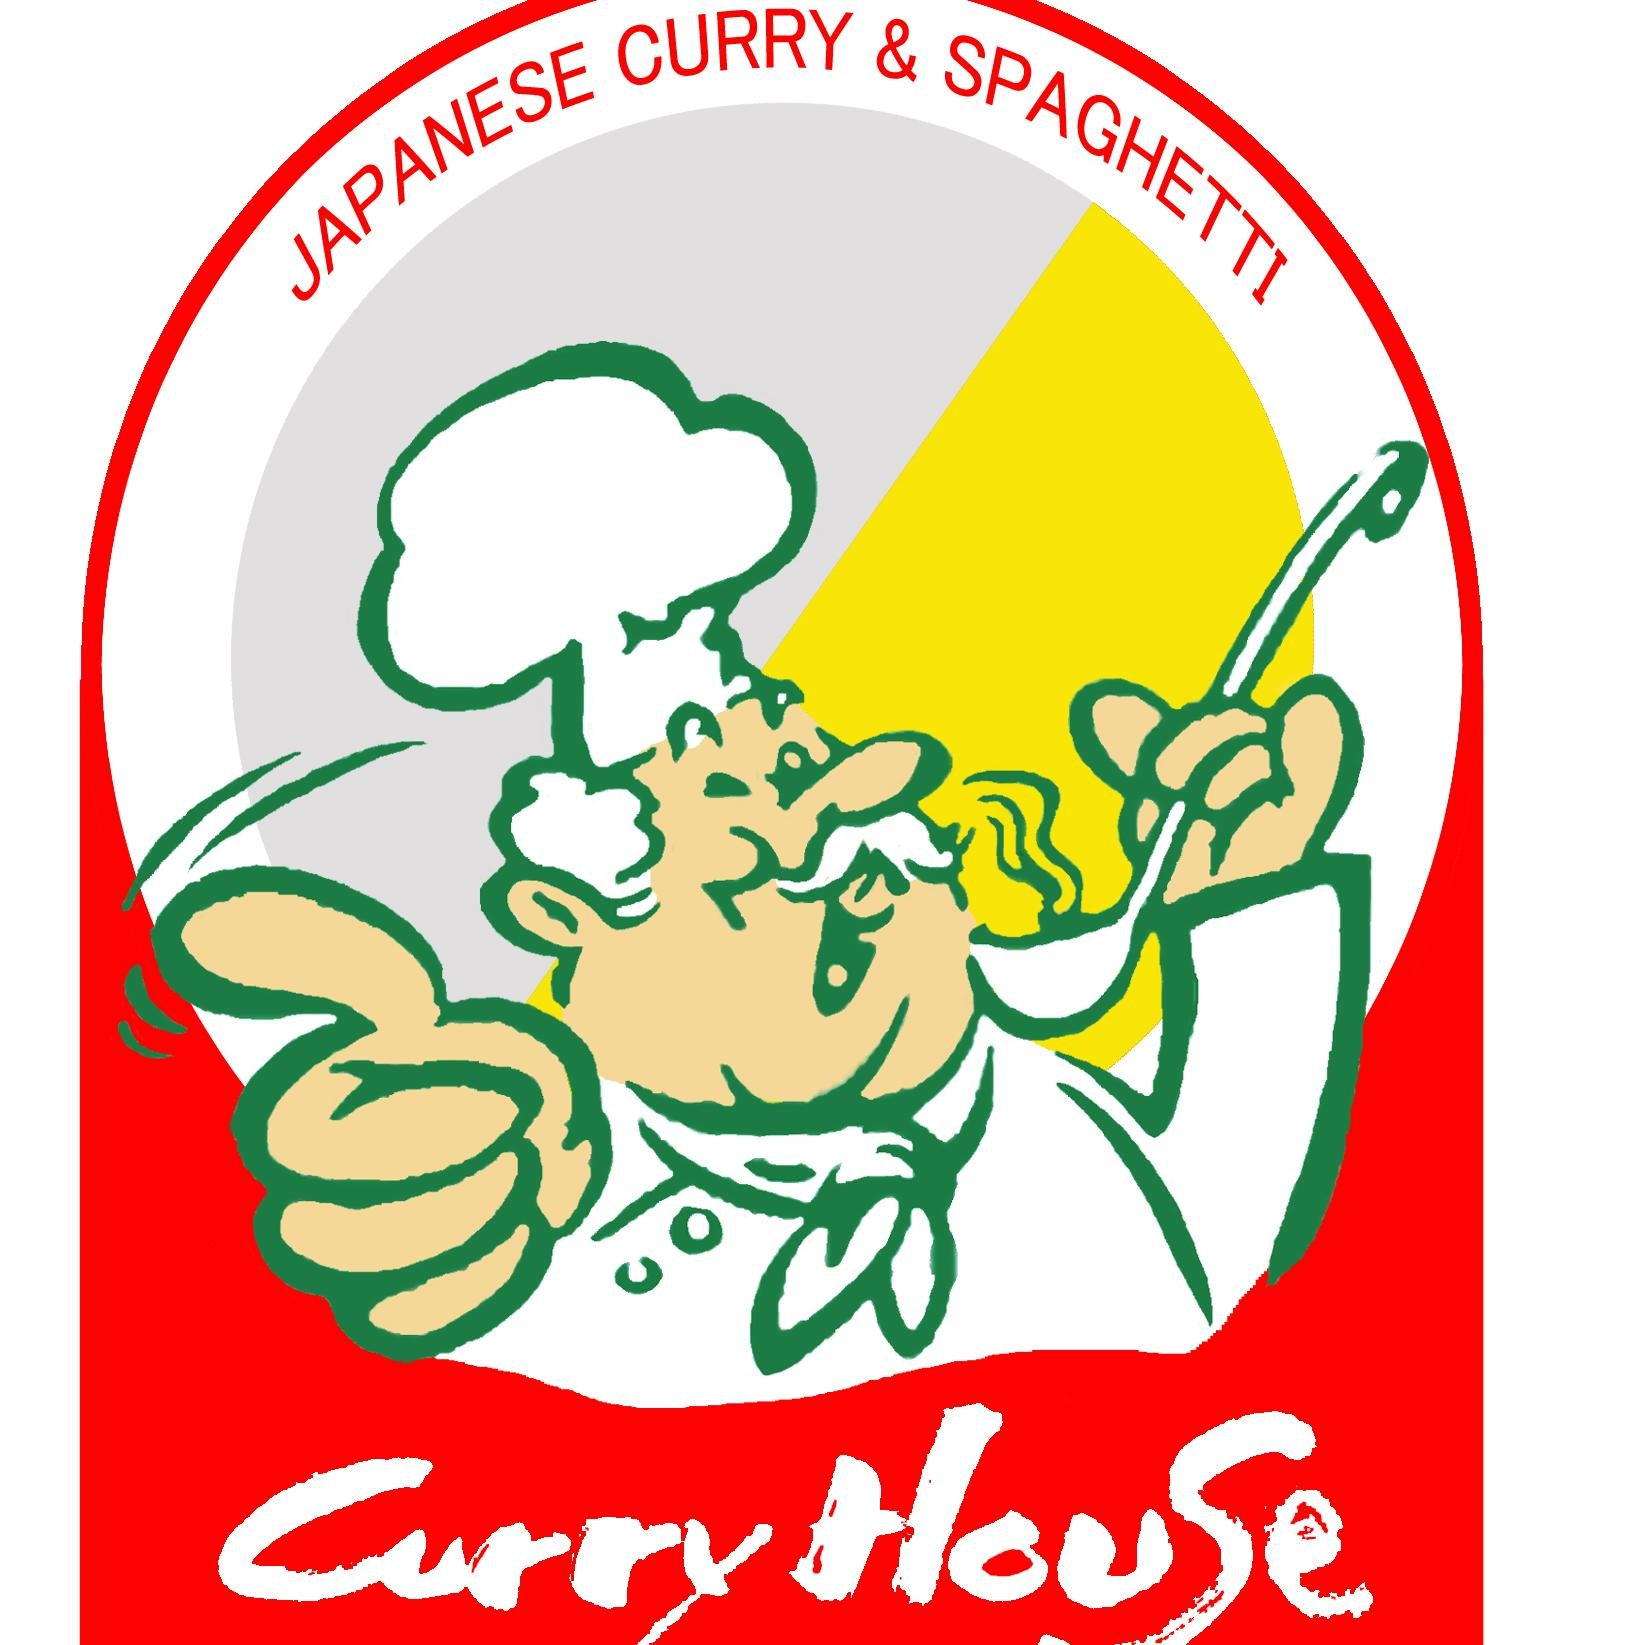 curry house monterey park